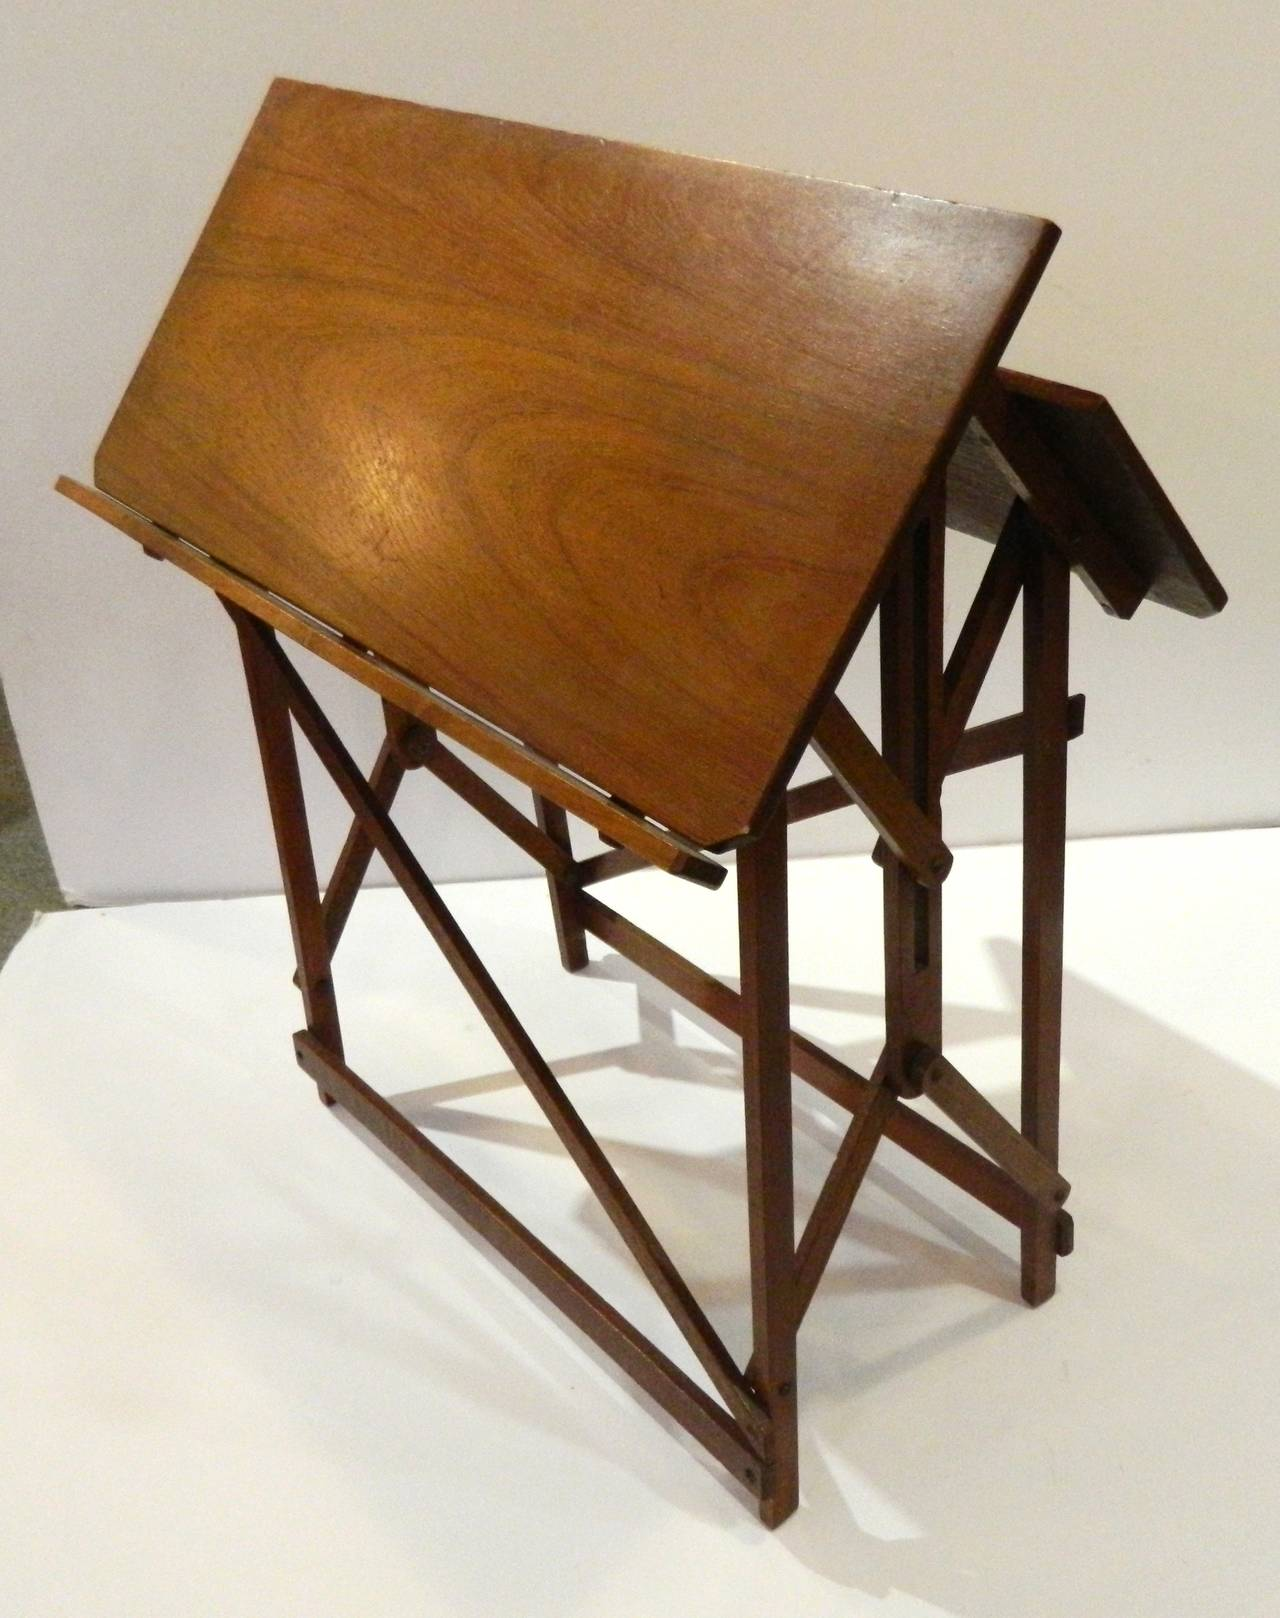 english arts and crafts folding table at 1stdibs. Black Bedroom Furniture Sets. Home Design Ideas